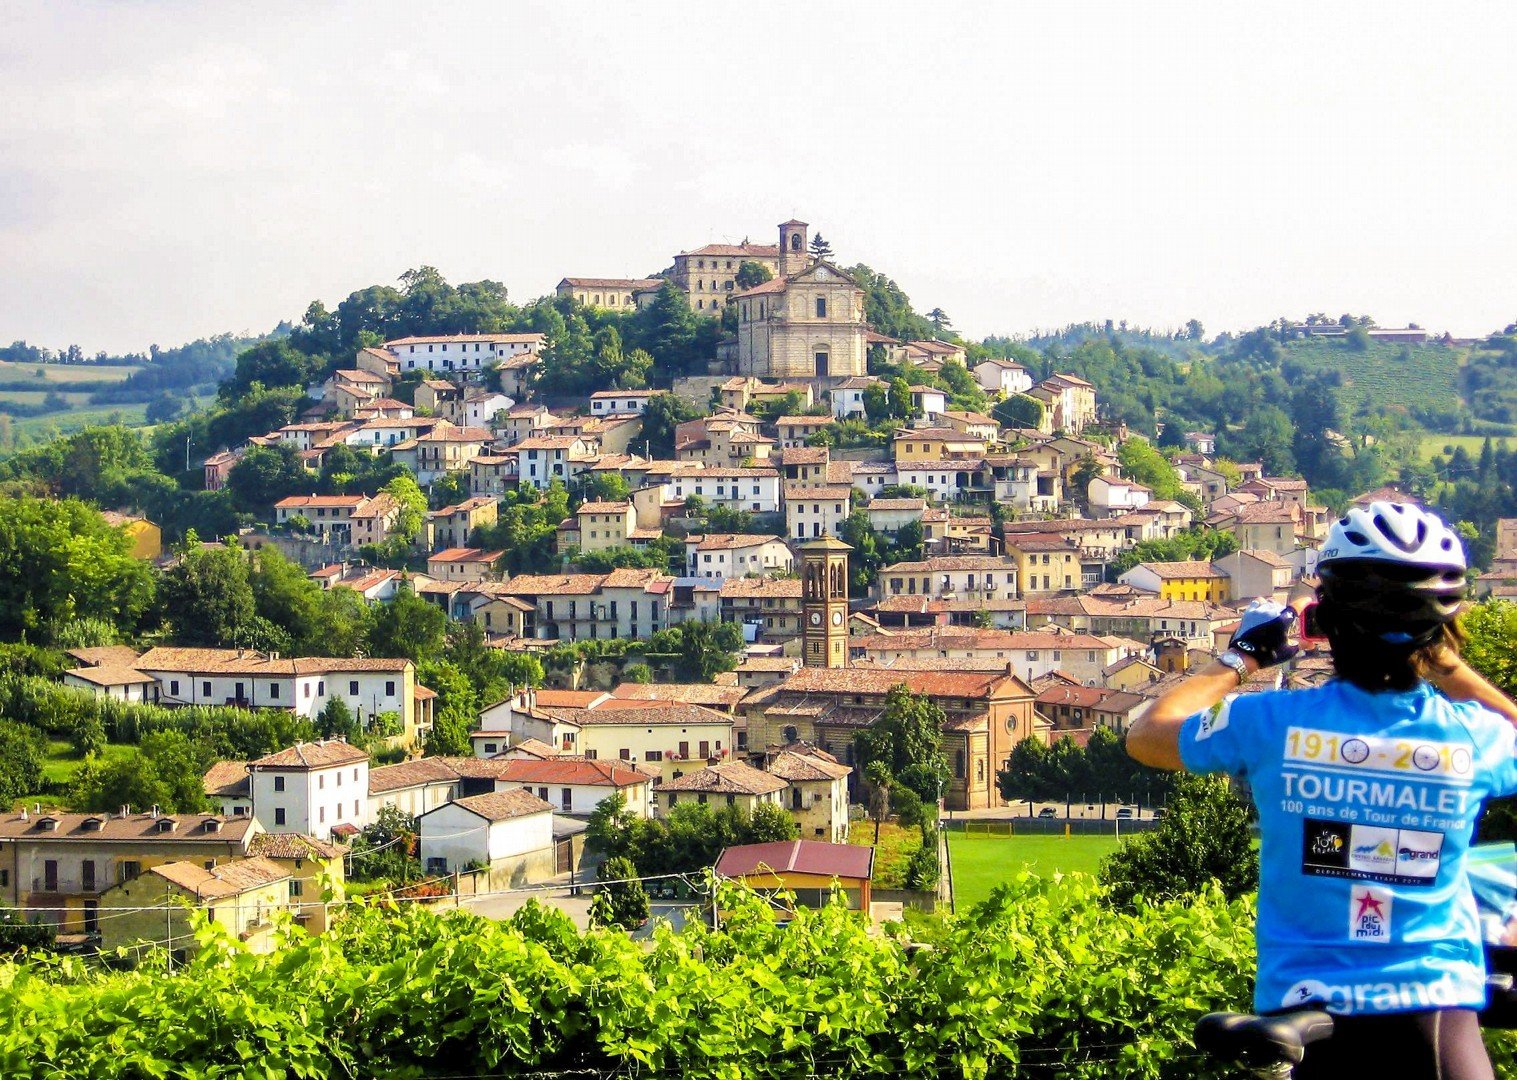 piedmont-italy-self-guided-cycling-culture-experience-agriturismo-accommodation.jpg - Italy - Piemonte - Vineyards and Views - Self-Guided Leisure Cycling Holiday - Italia Leisure and Family Cycling